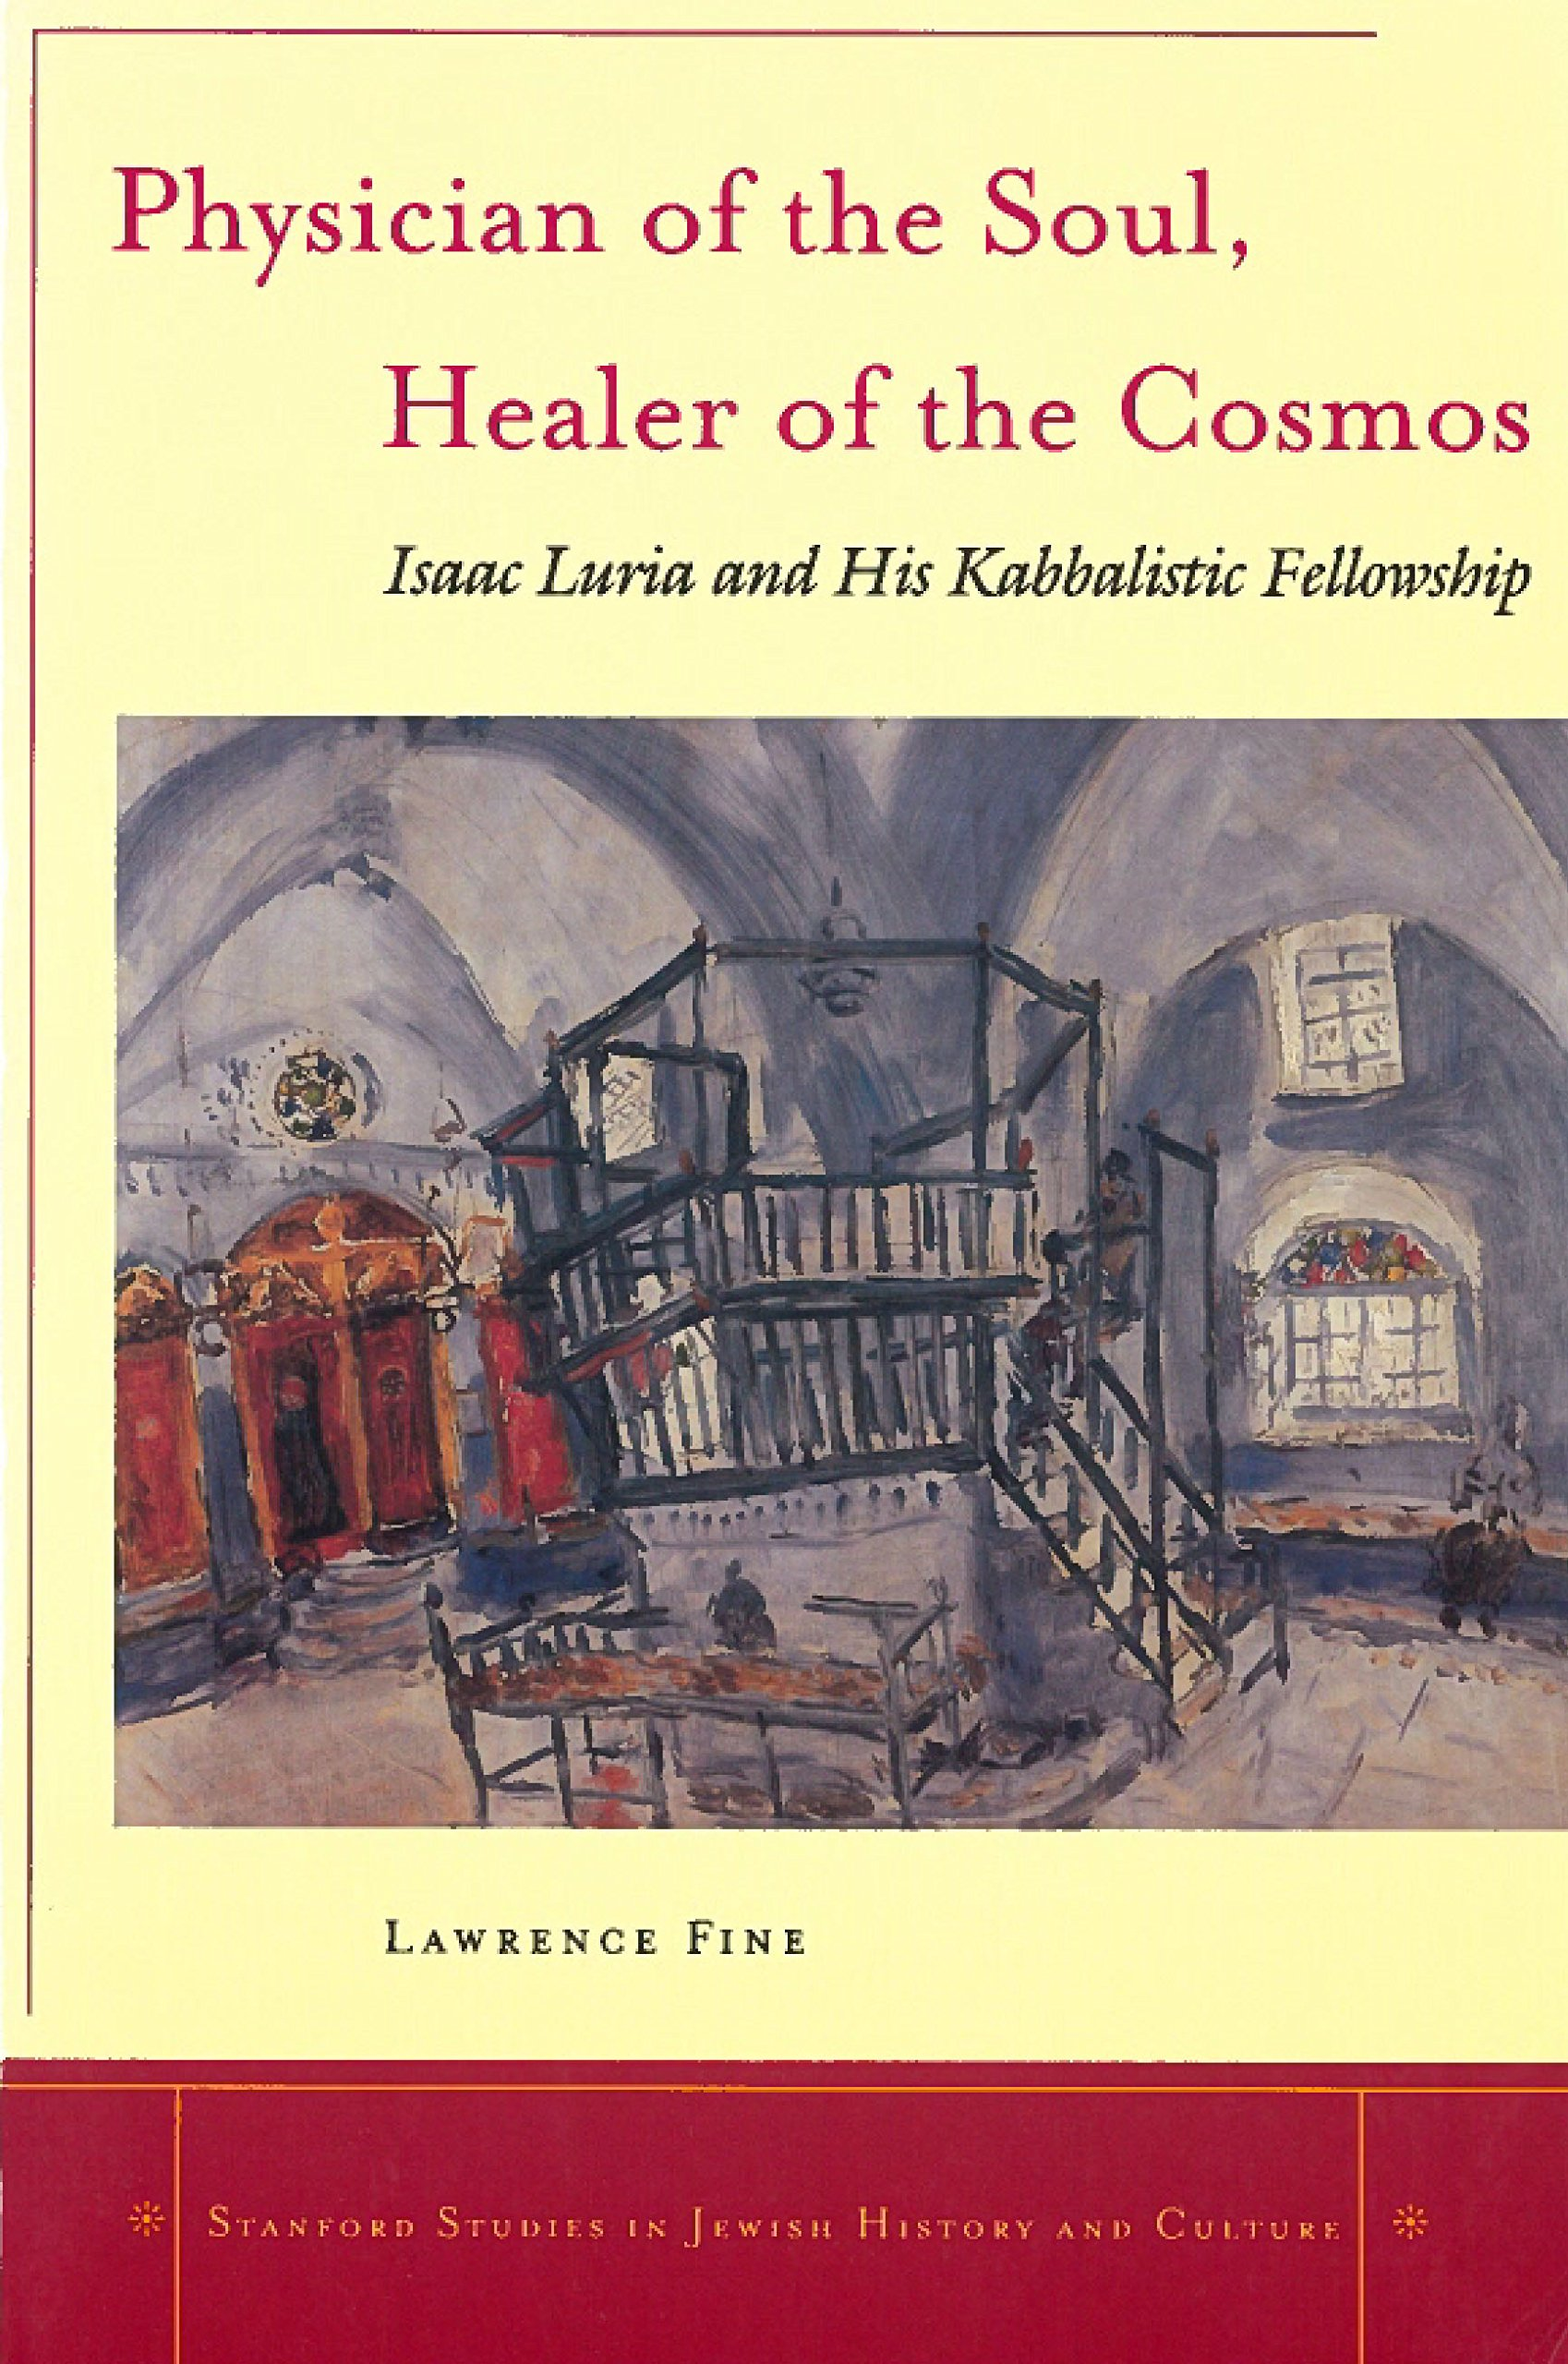 Read Online Physician of the Soul, Healer of the Cosmos: Isaac Luria and his Kabbalistic Fellowship (Stanford Studies in Jewish History and Culture) PDF